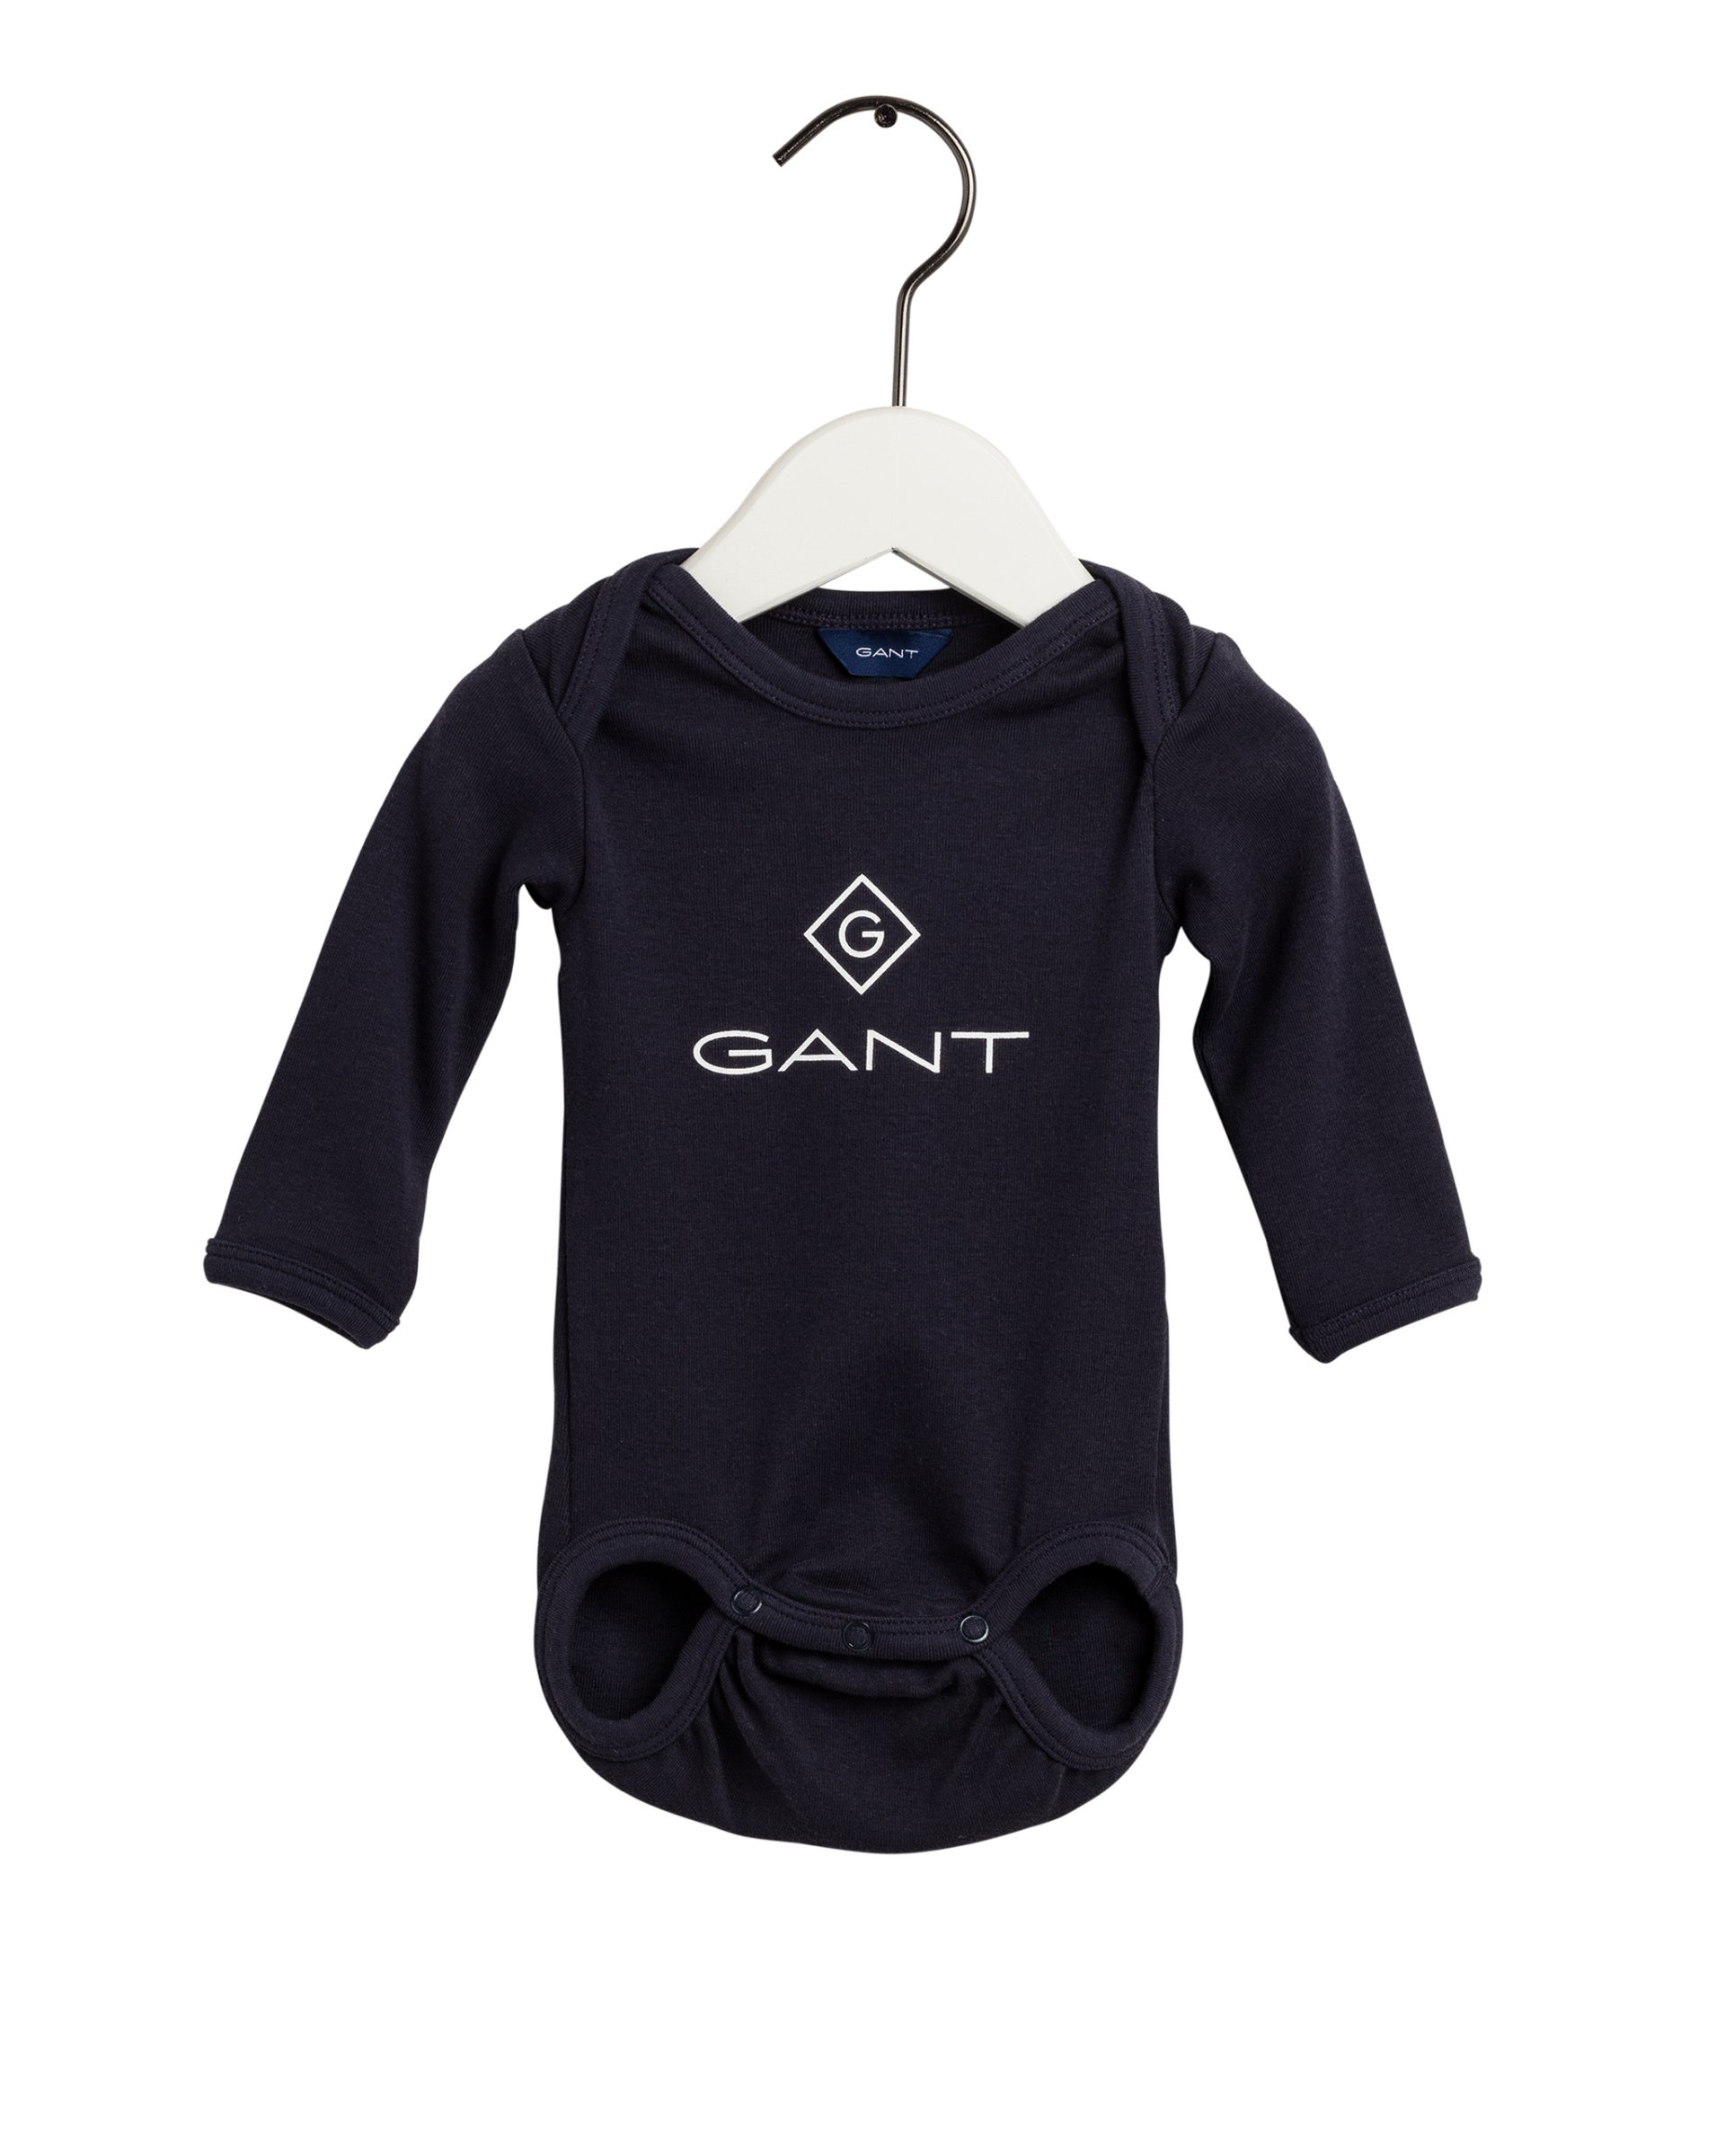 GANT, organic lock-up body tummansininen